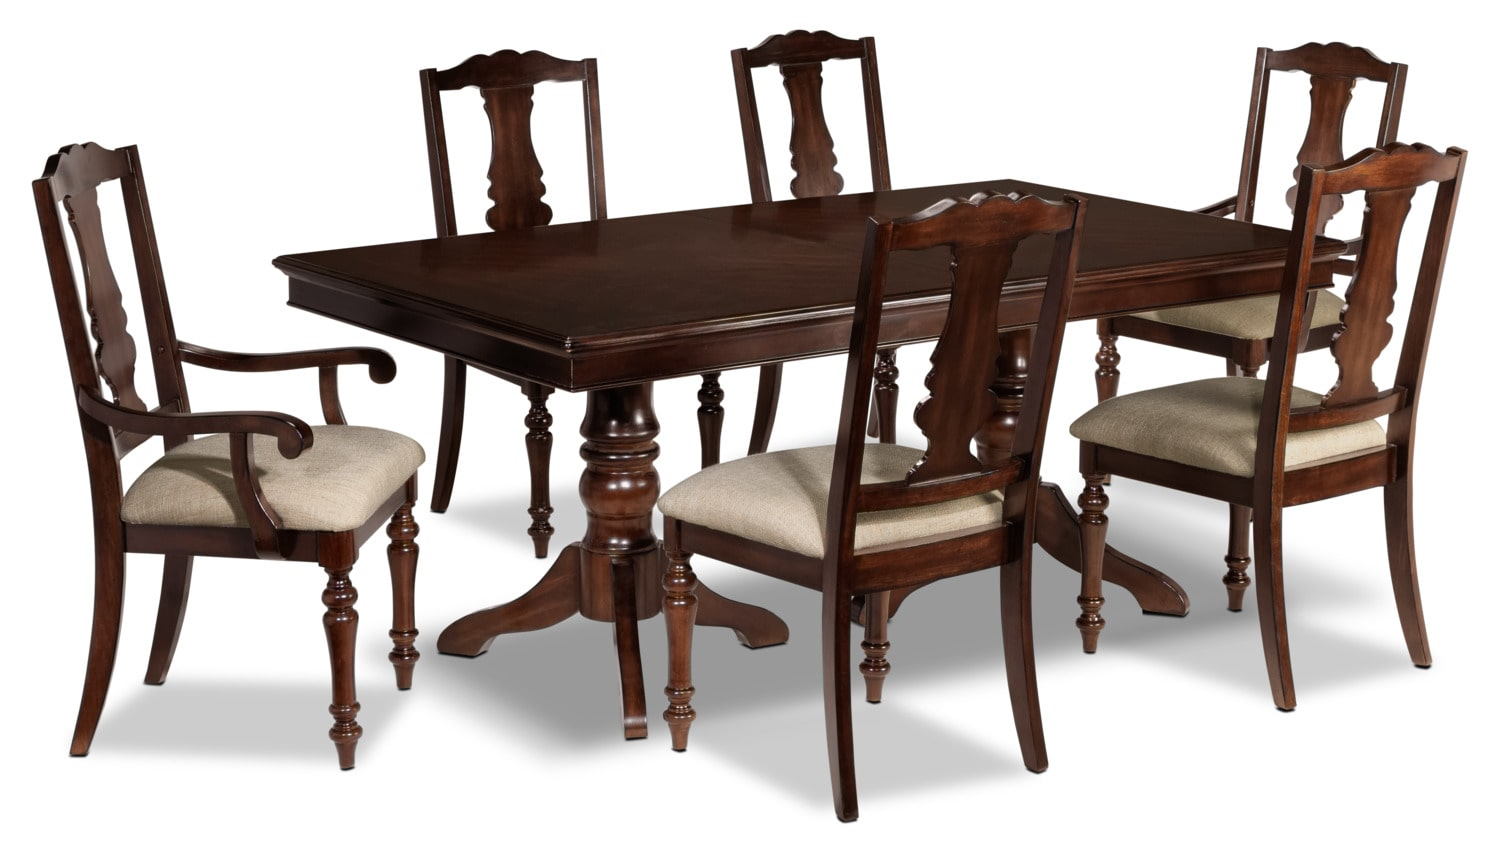 Dining Room Furniture - Alice 7-Piece Dining Room Set - Cherry